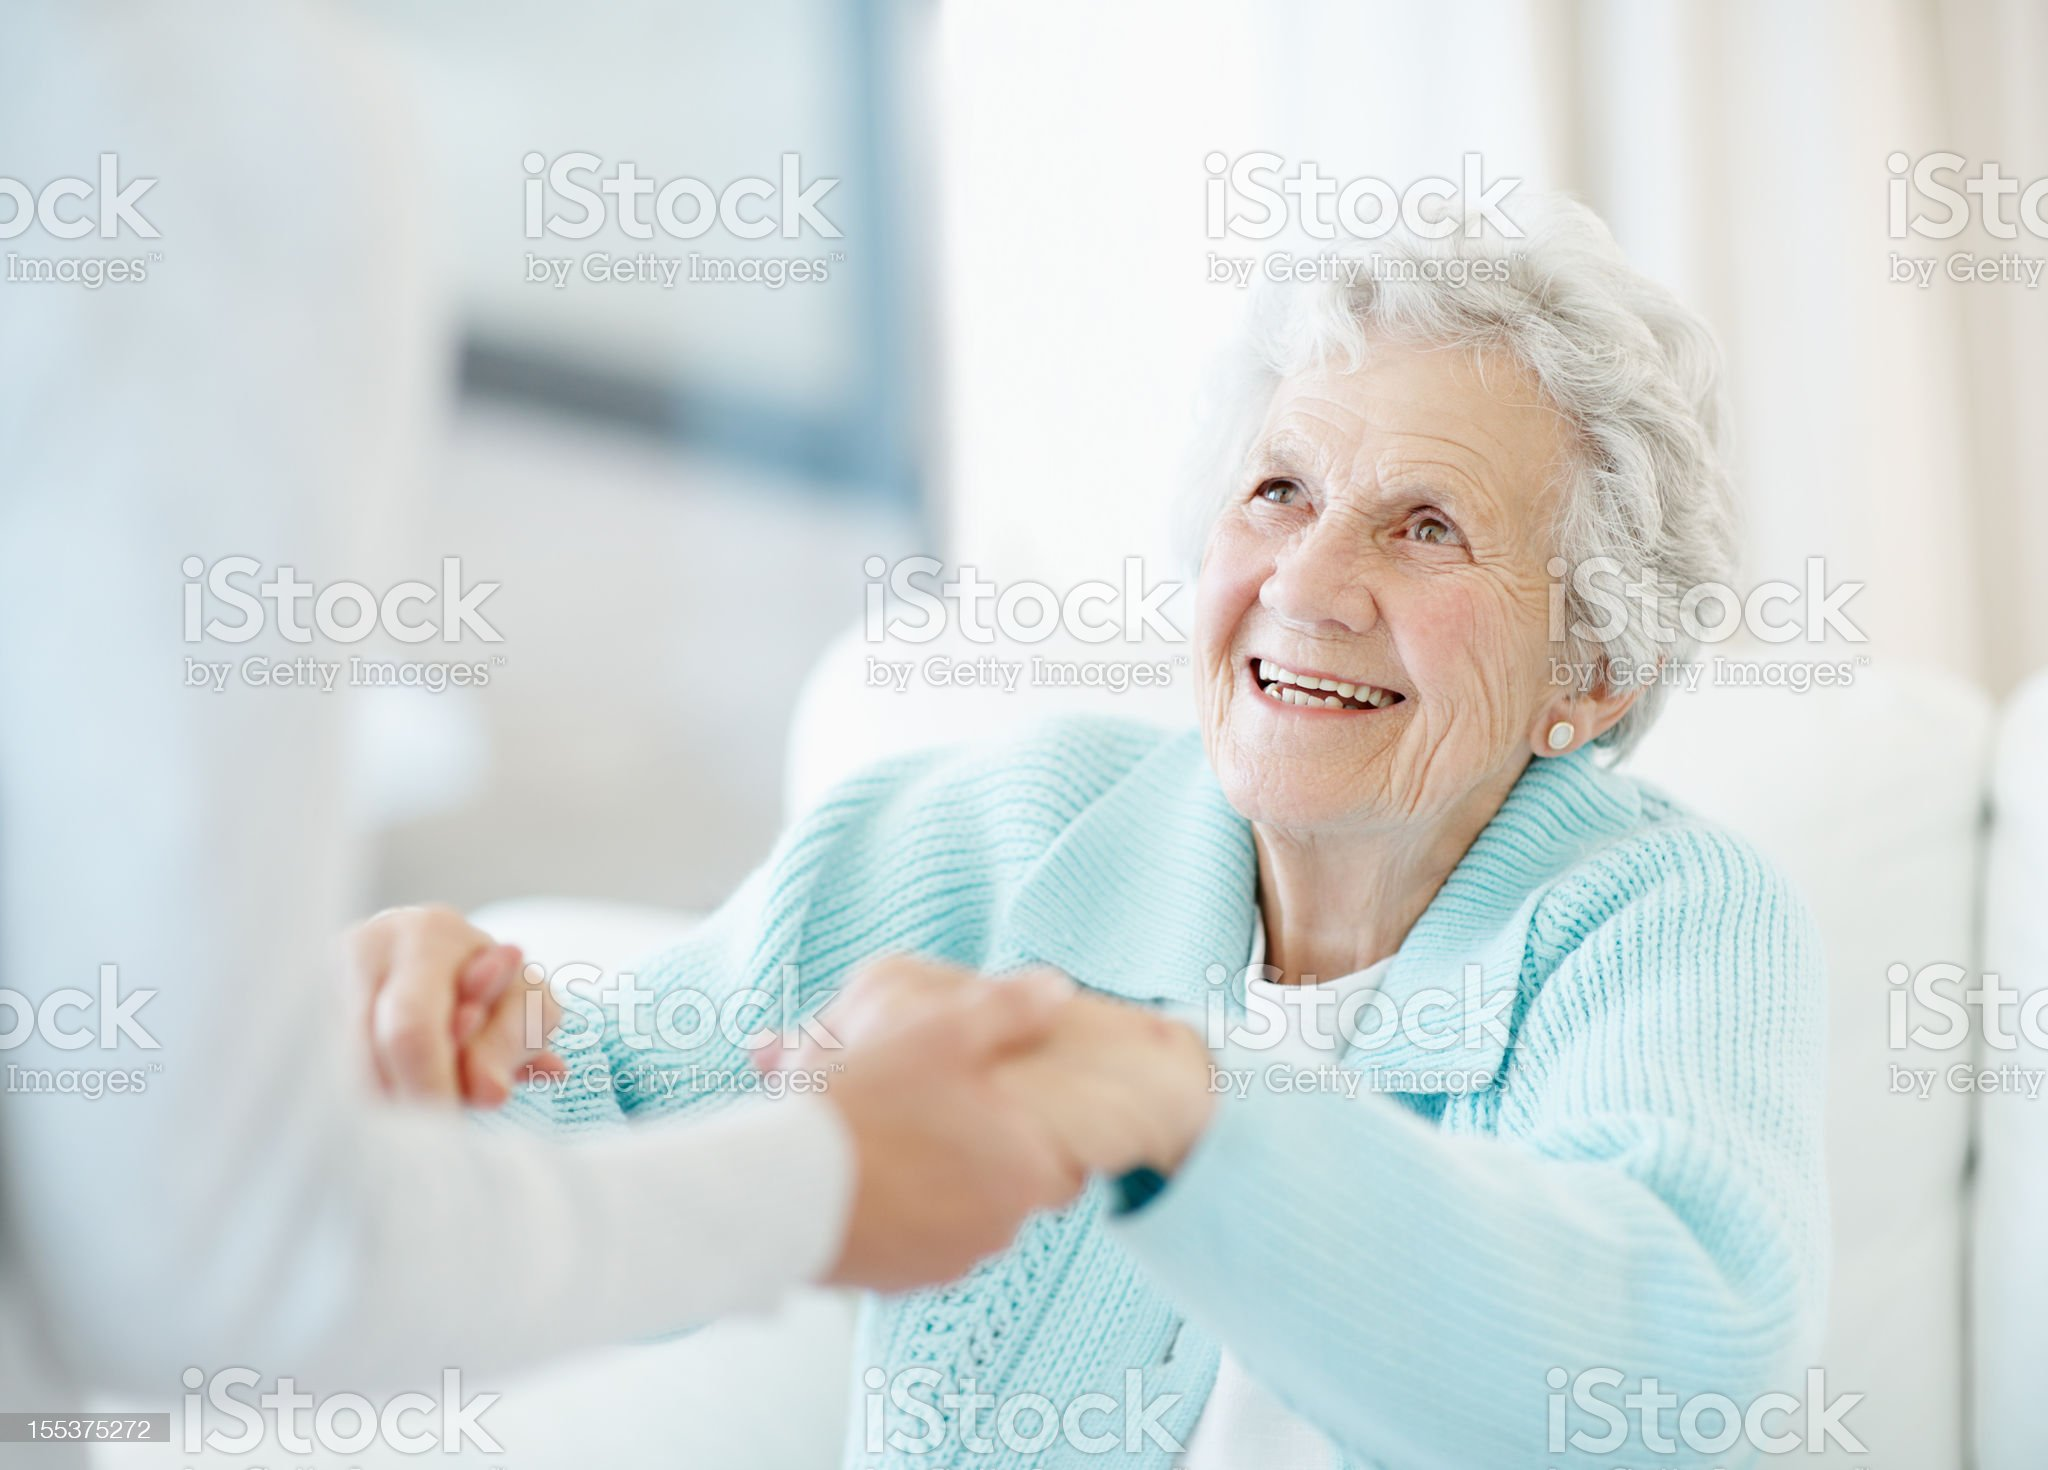 Devoted care and assistance royalty-free stock photo